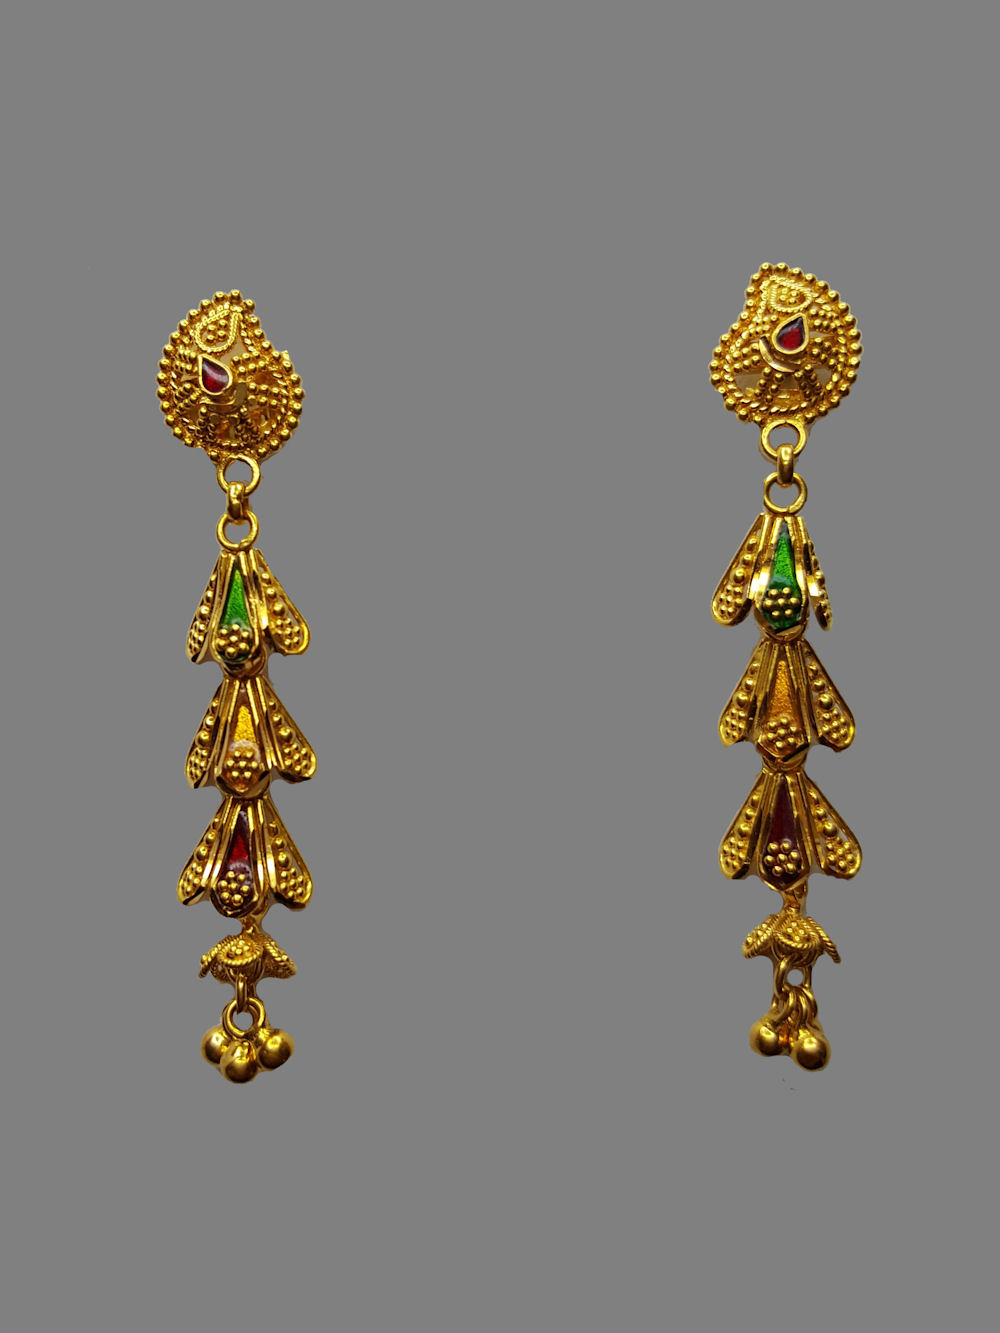 w products jewelers earrings mm virani gm earring ball hanging yellow accents gold